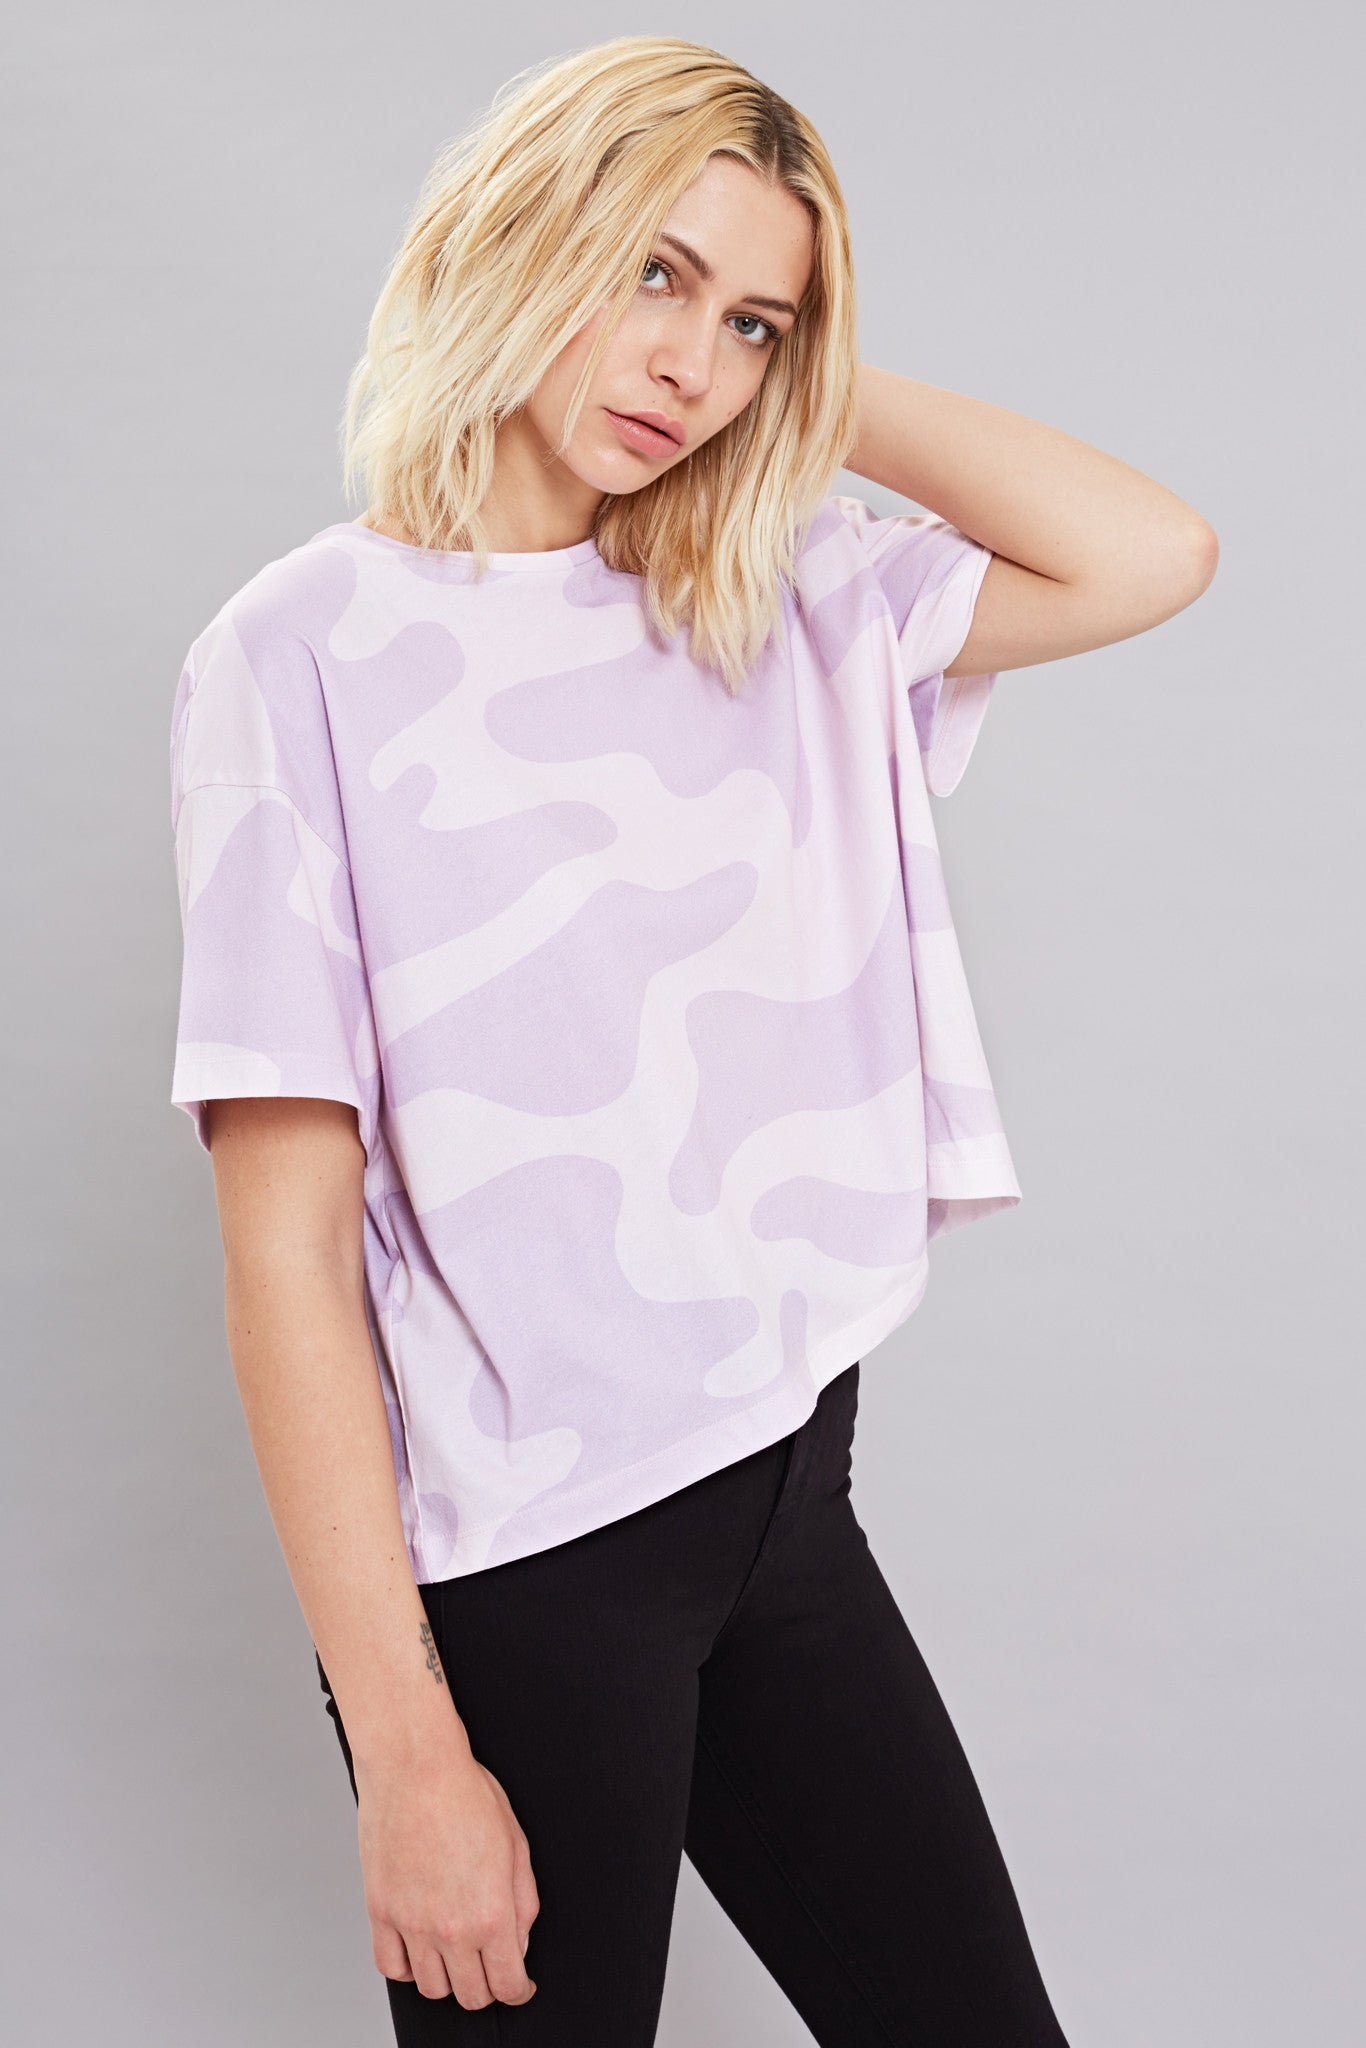 Bundy & Webster lilac camo print t-shirt